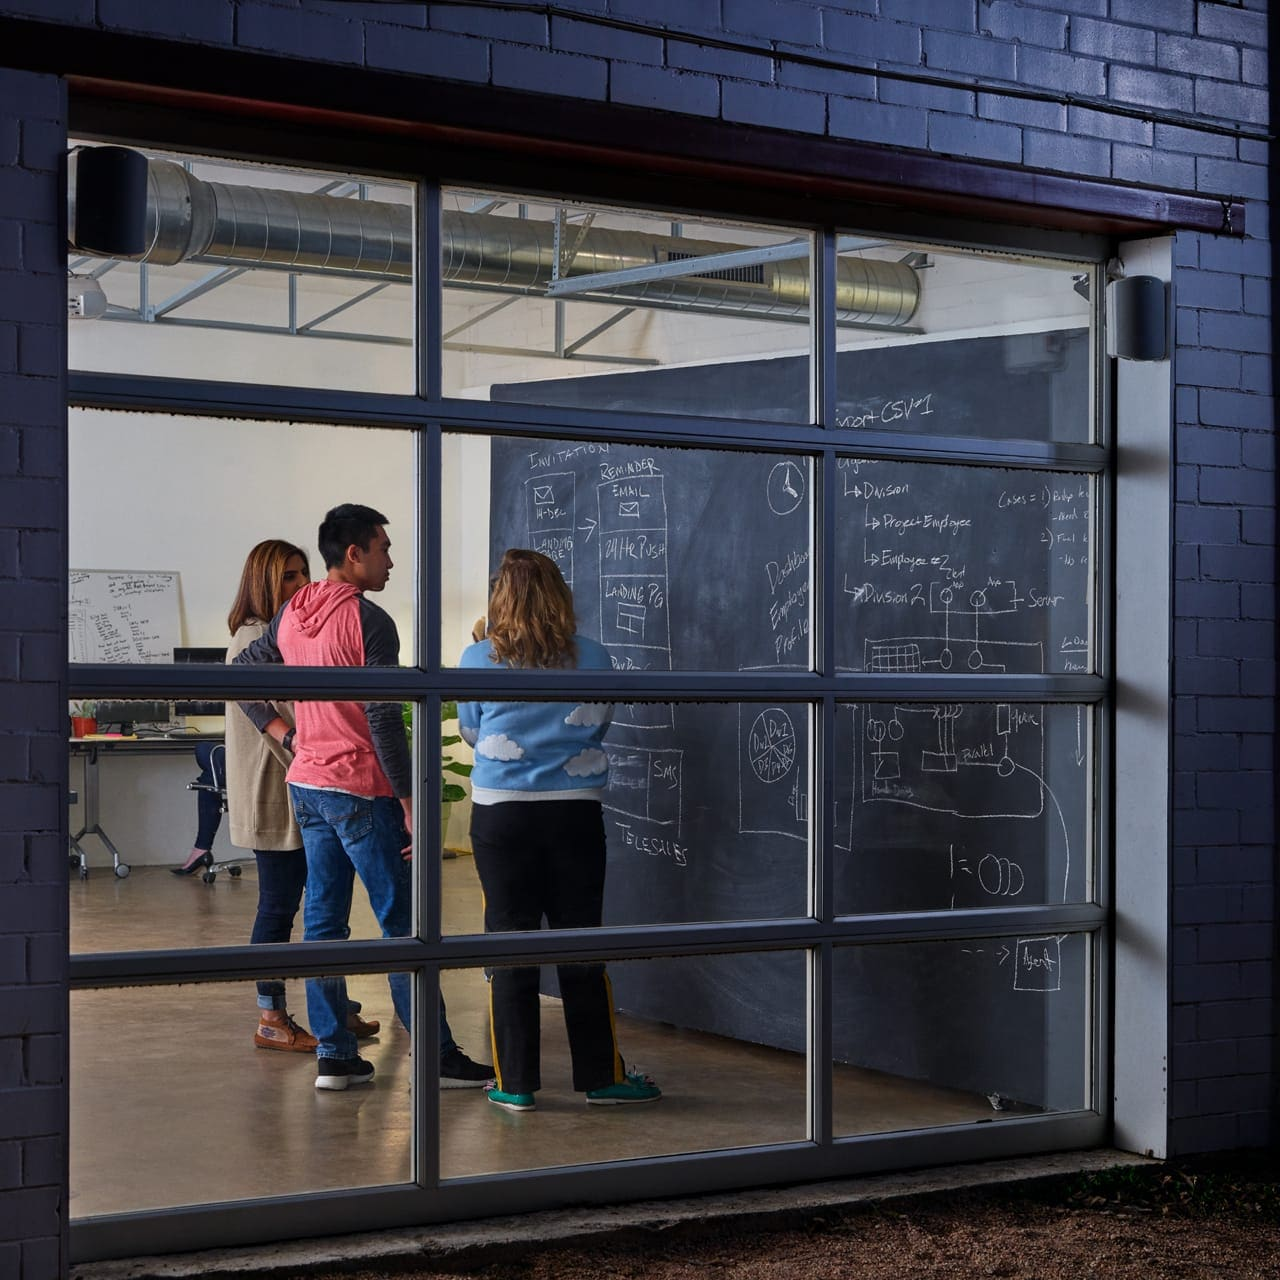 Group of people writing on a chalkboard in a garage-like setting